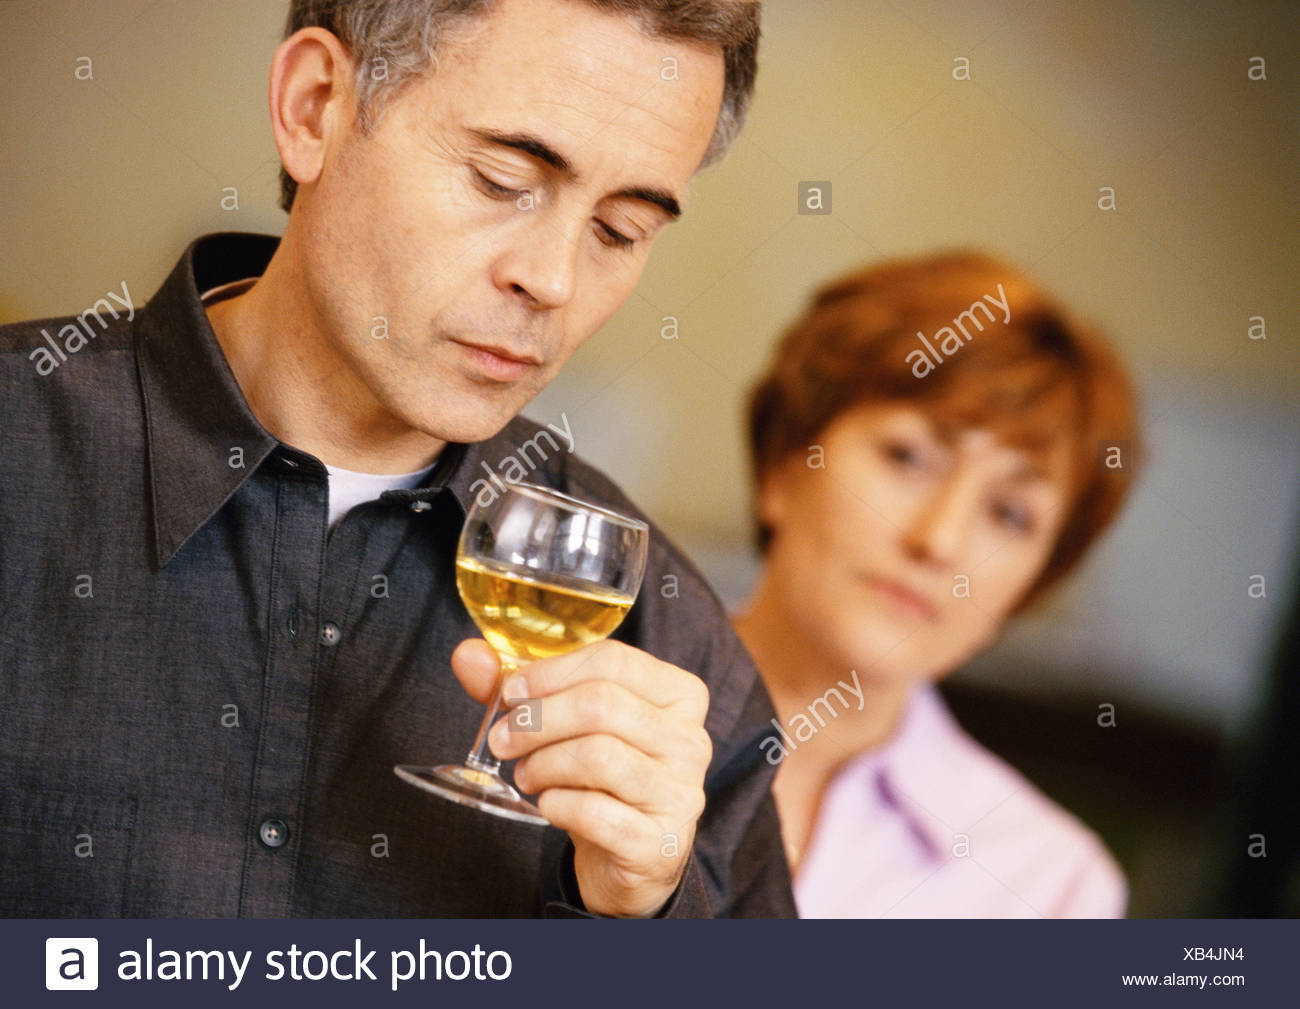 Man holding and looking at wine glass, woman blurred in background, head and shoulders, close-up - Stock Image